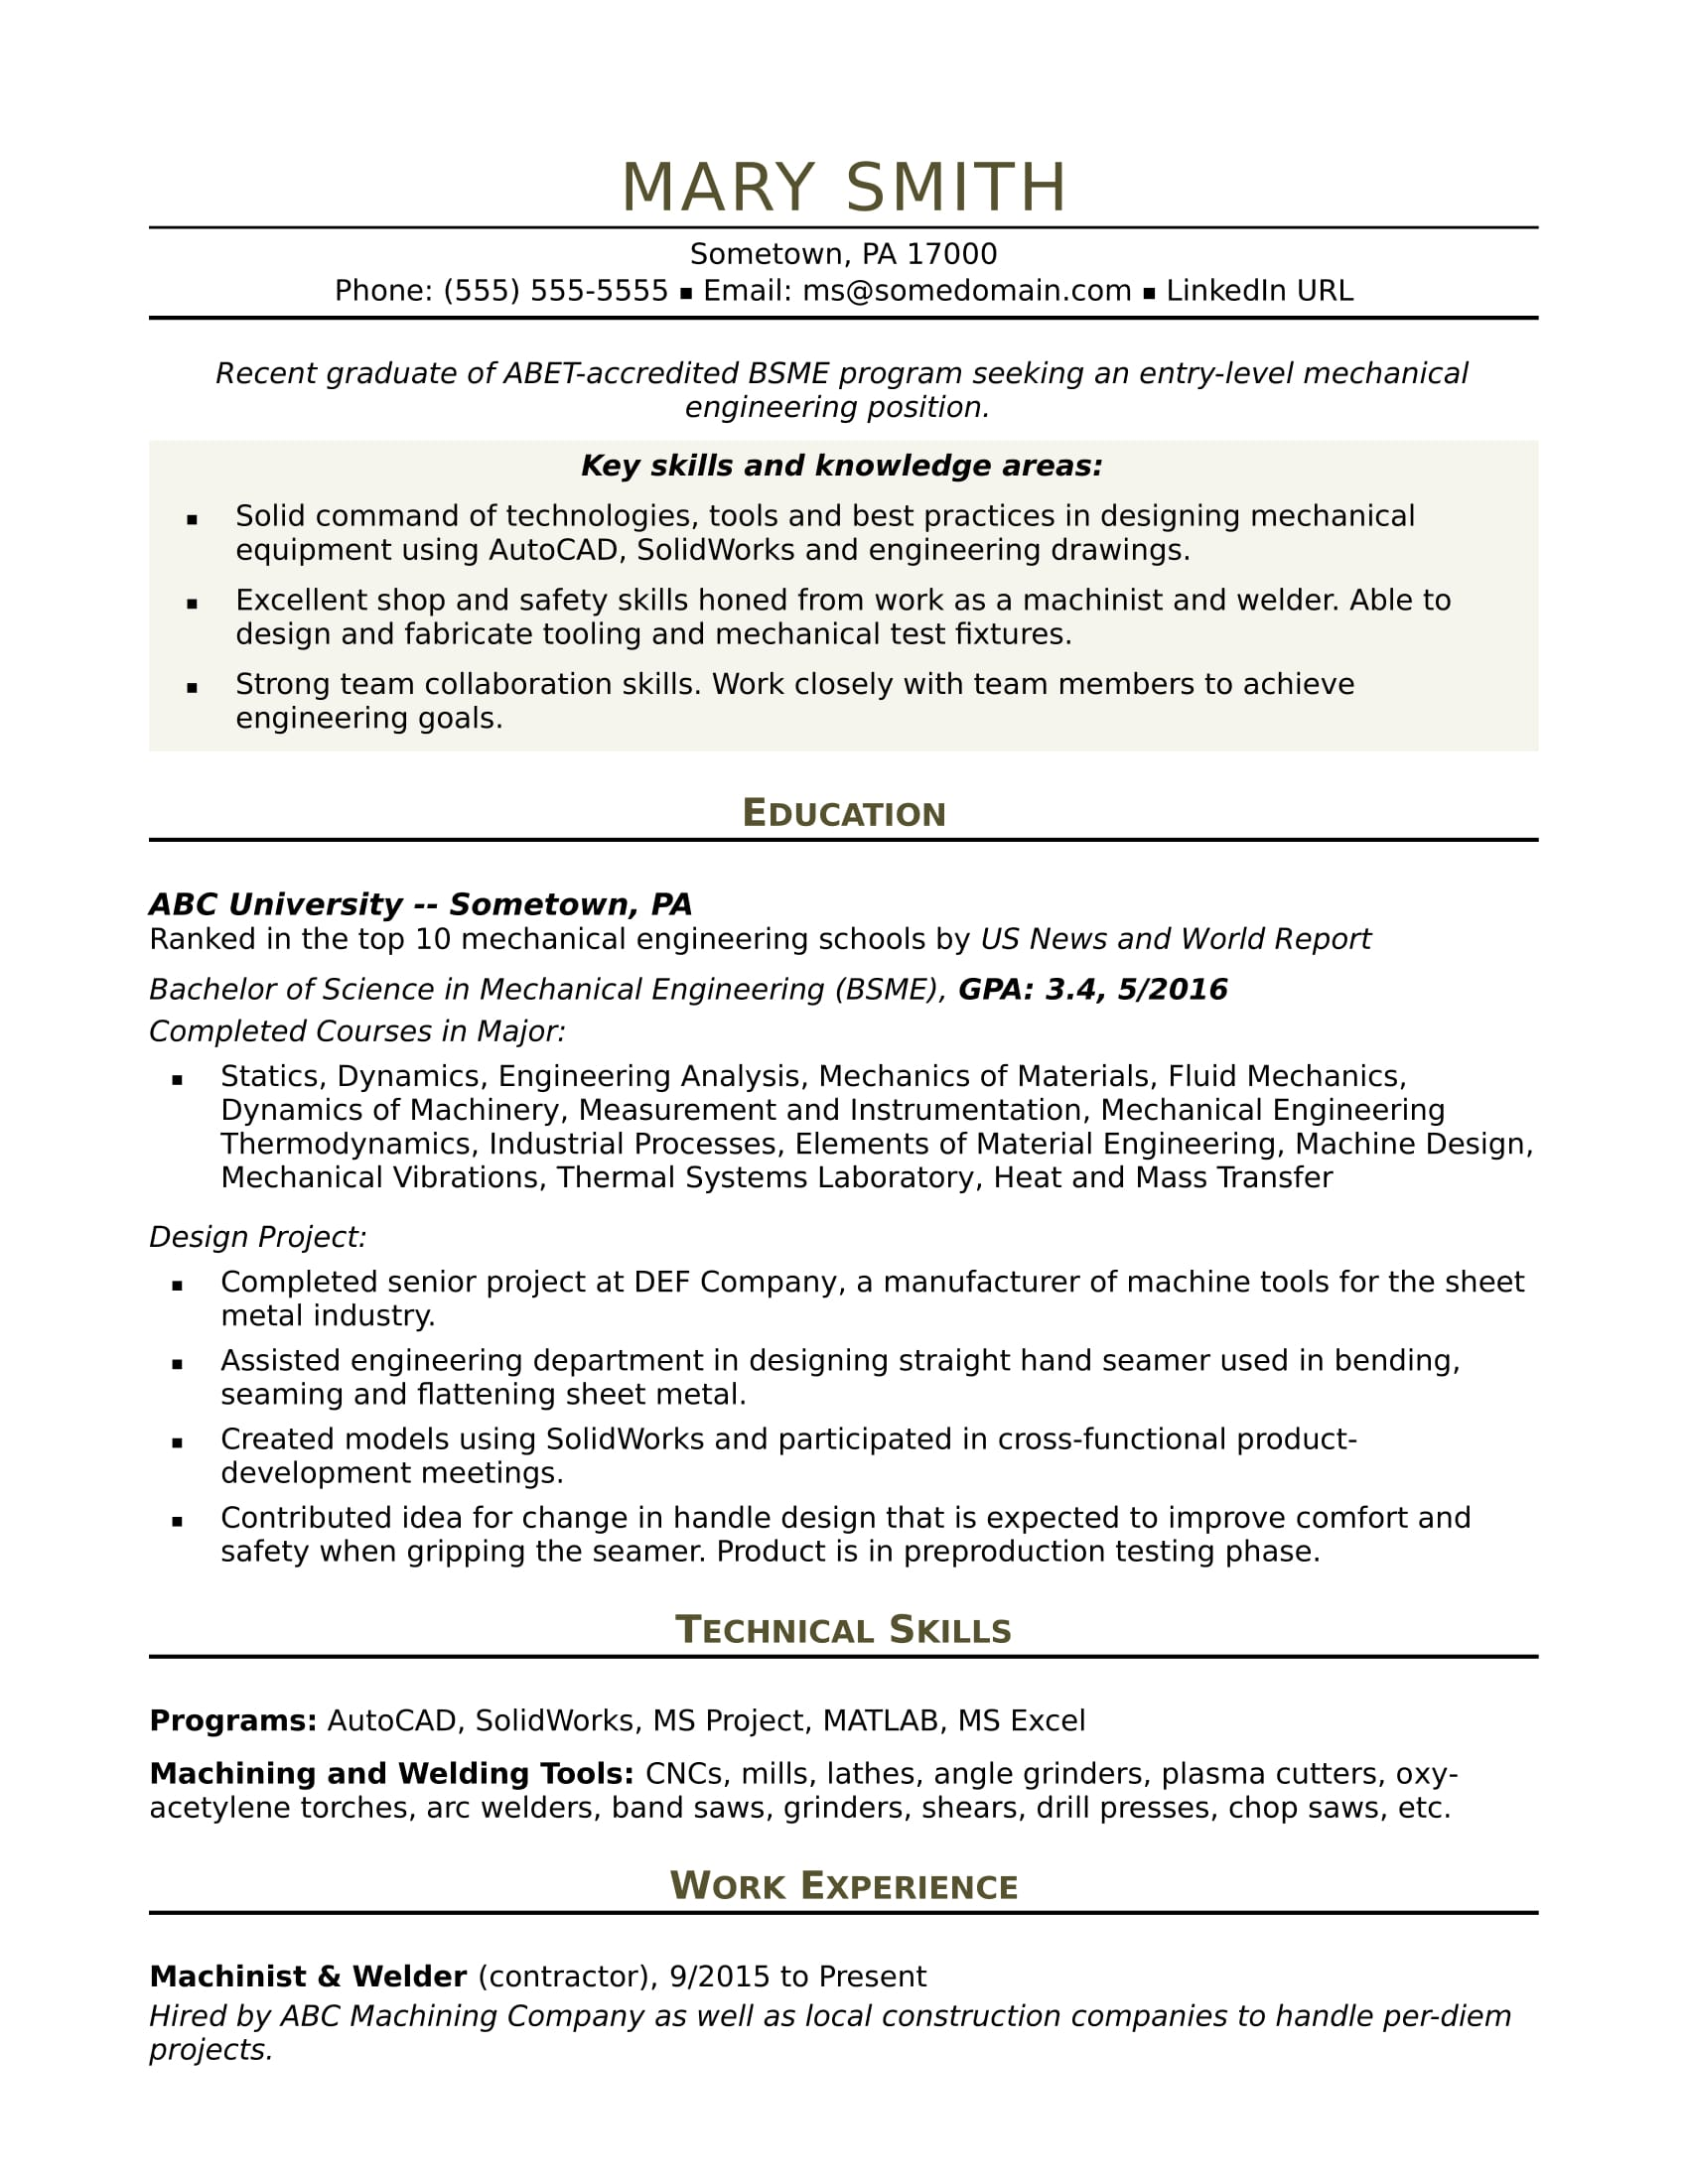 Sample Resume For An EntryLevel Mechanical Engineer Monstercom